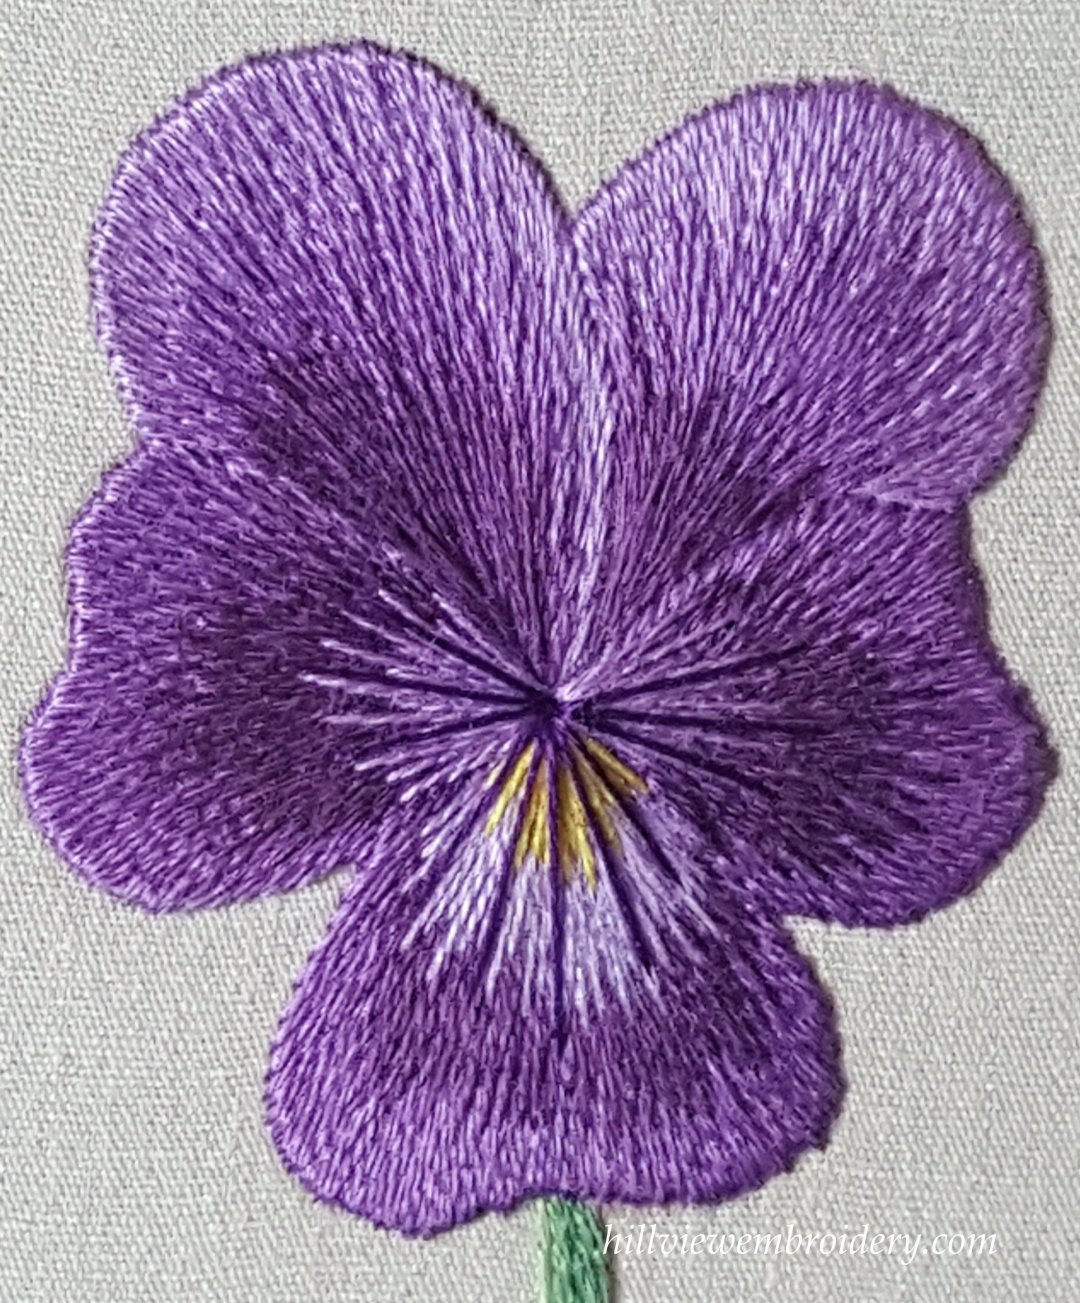 A pansy stitched in silk shading